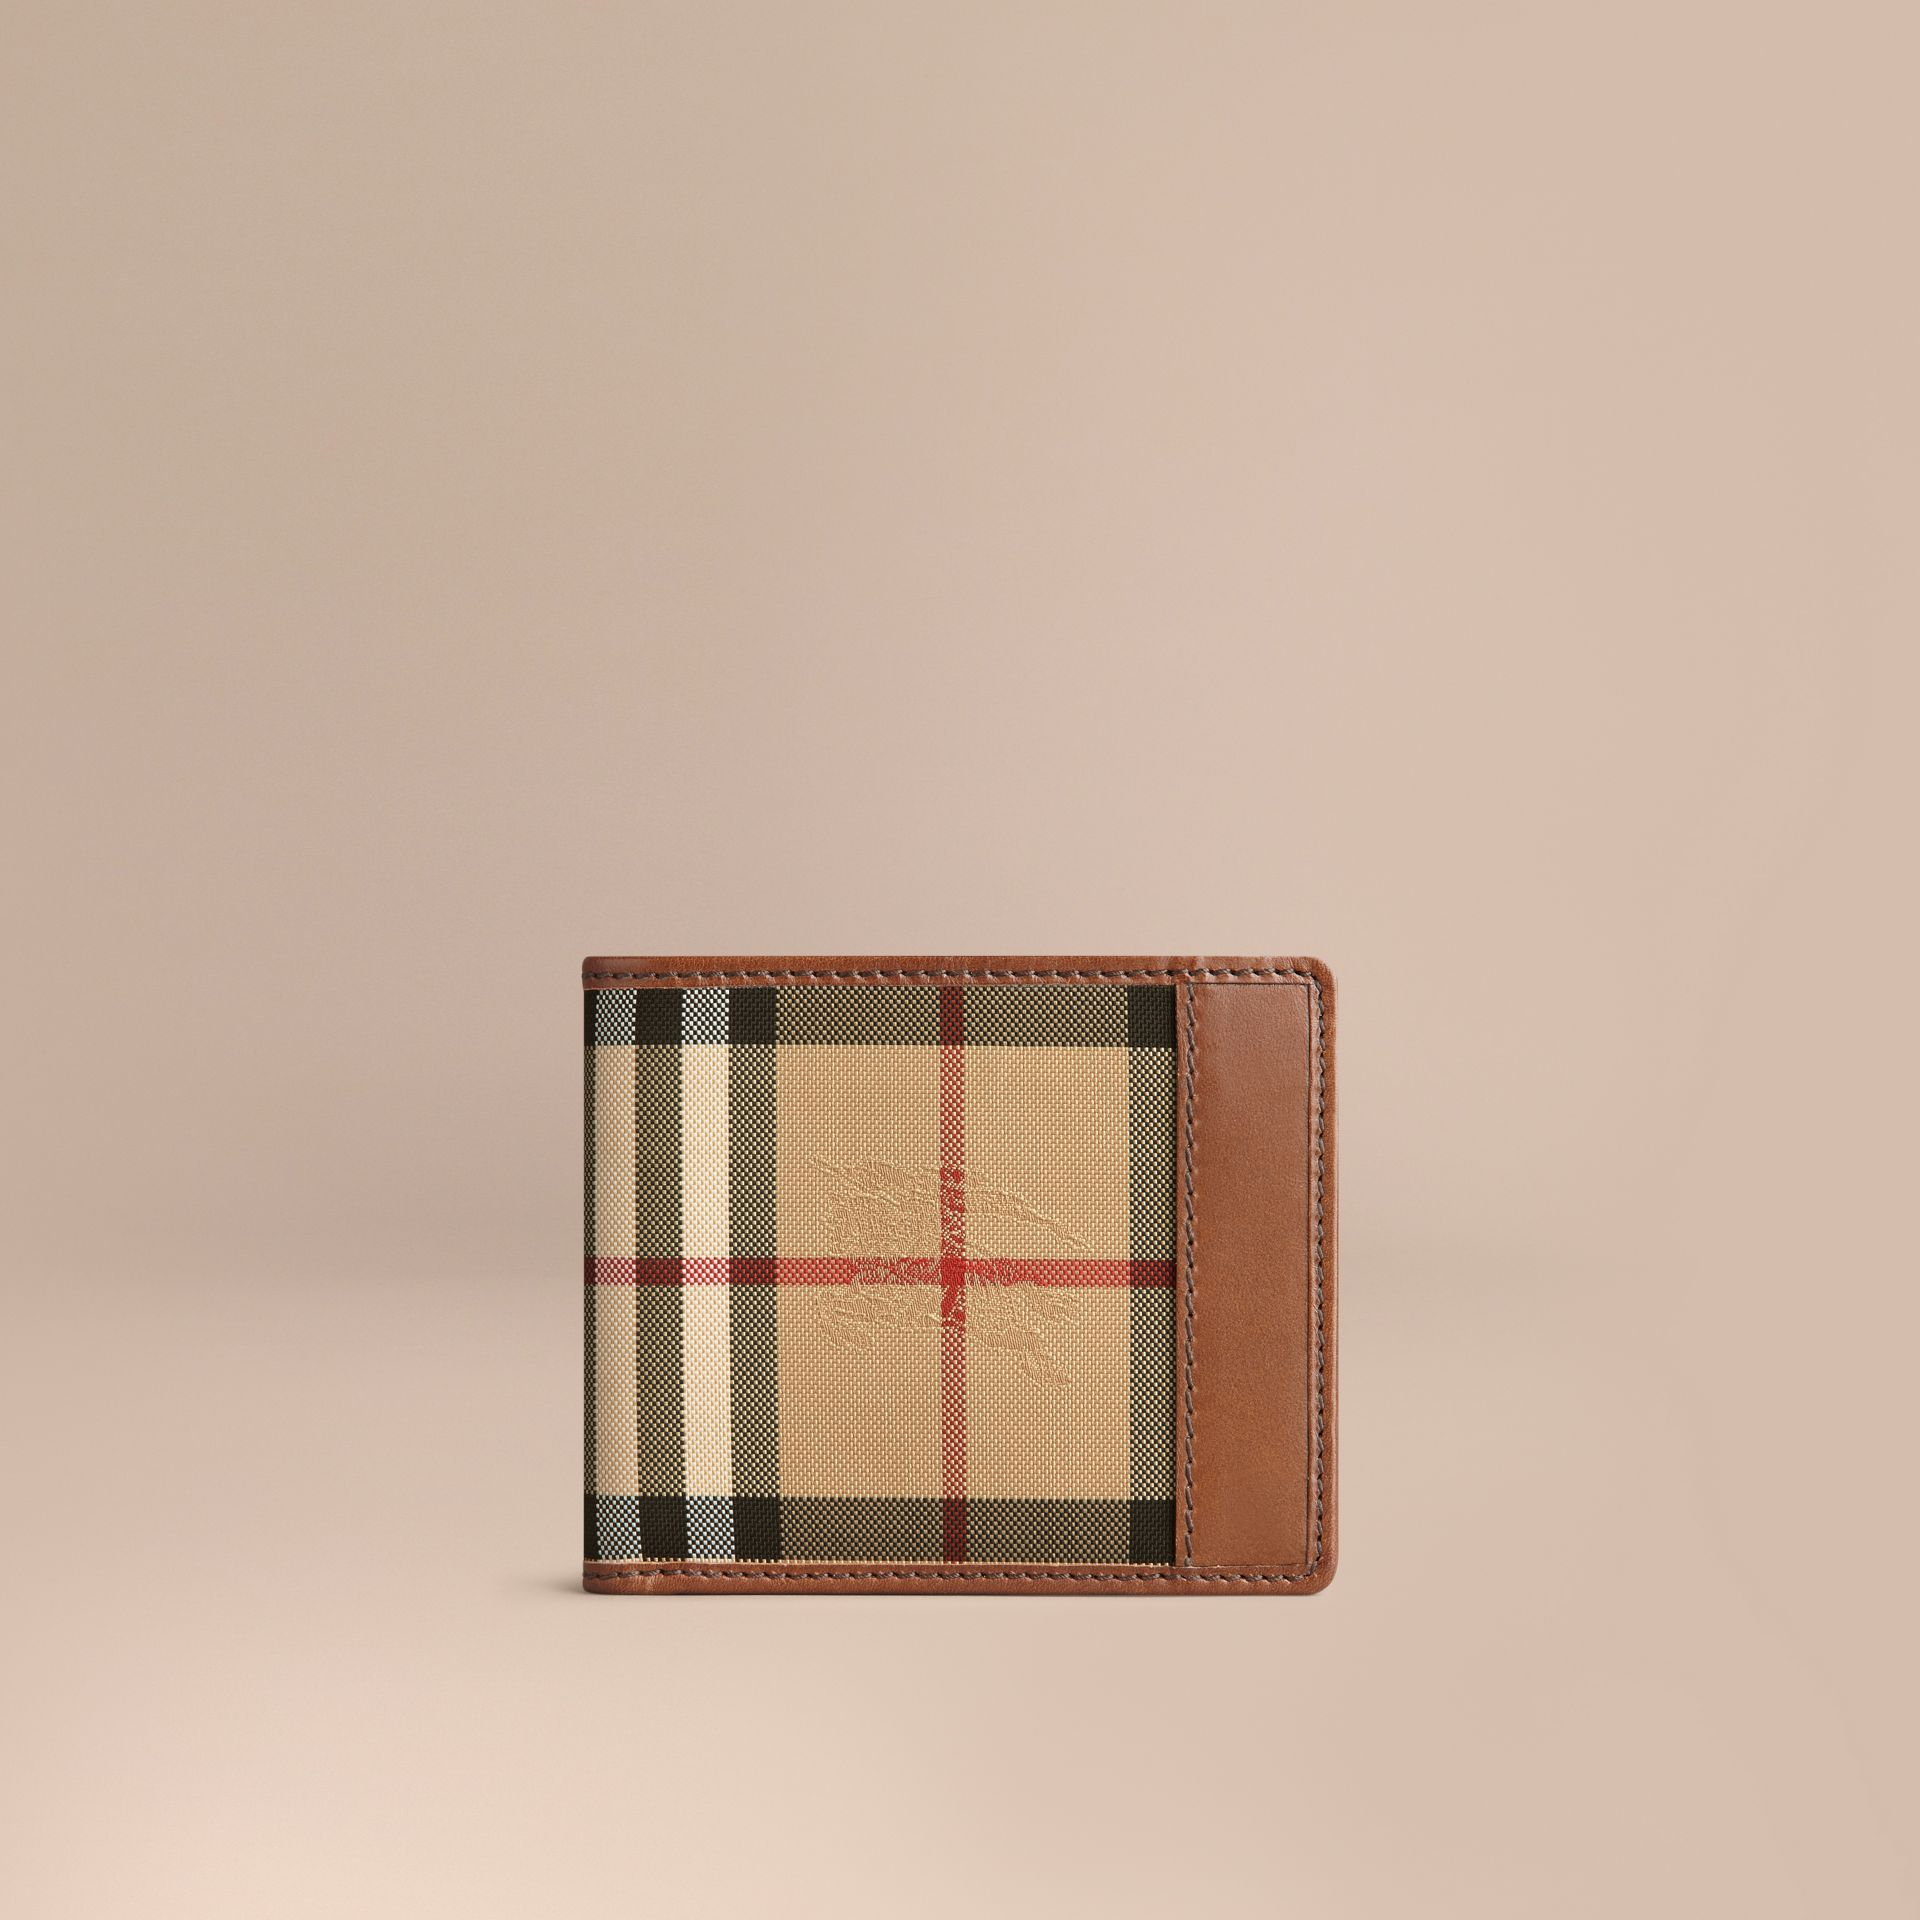 Tan Horseferry Check ID Wallet Tan - gallery image 1